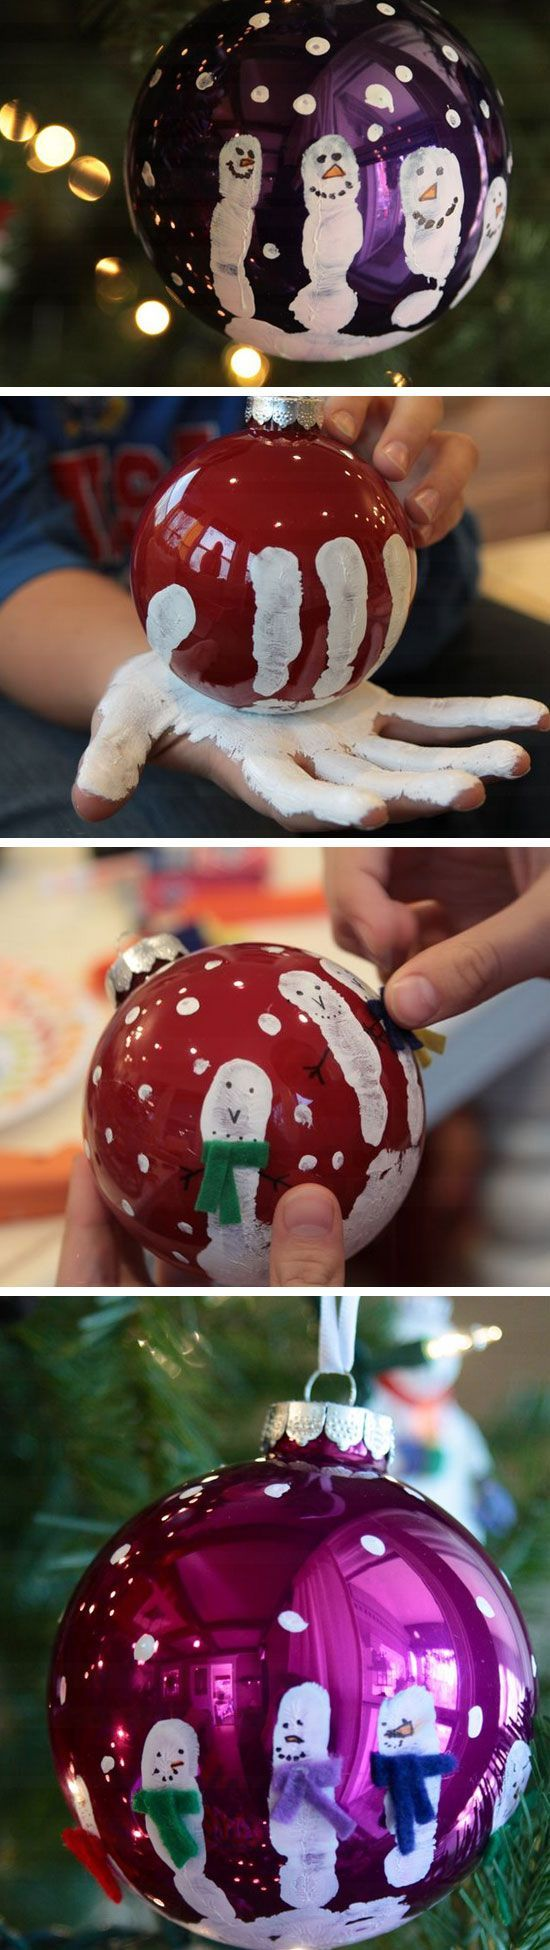 Clear christmas bulbs for crafting - Diy Christmas Craft Ideas For Kids Easy Handprint Ornament For Kids To Make